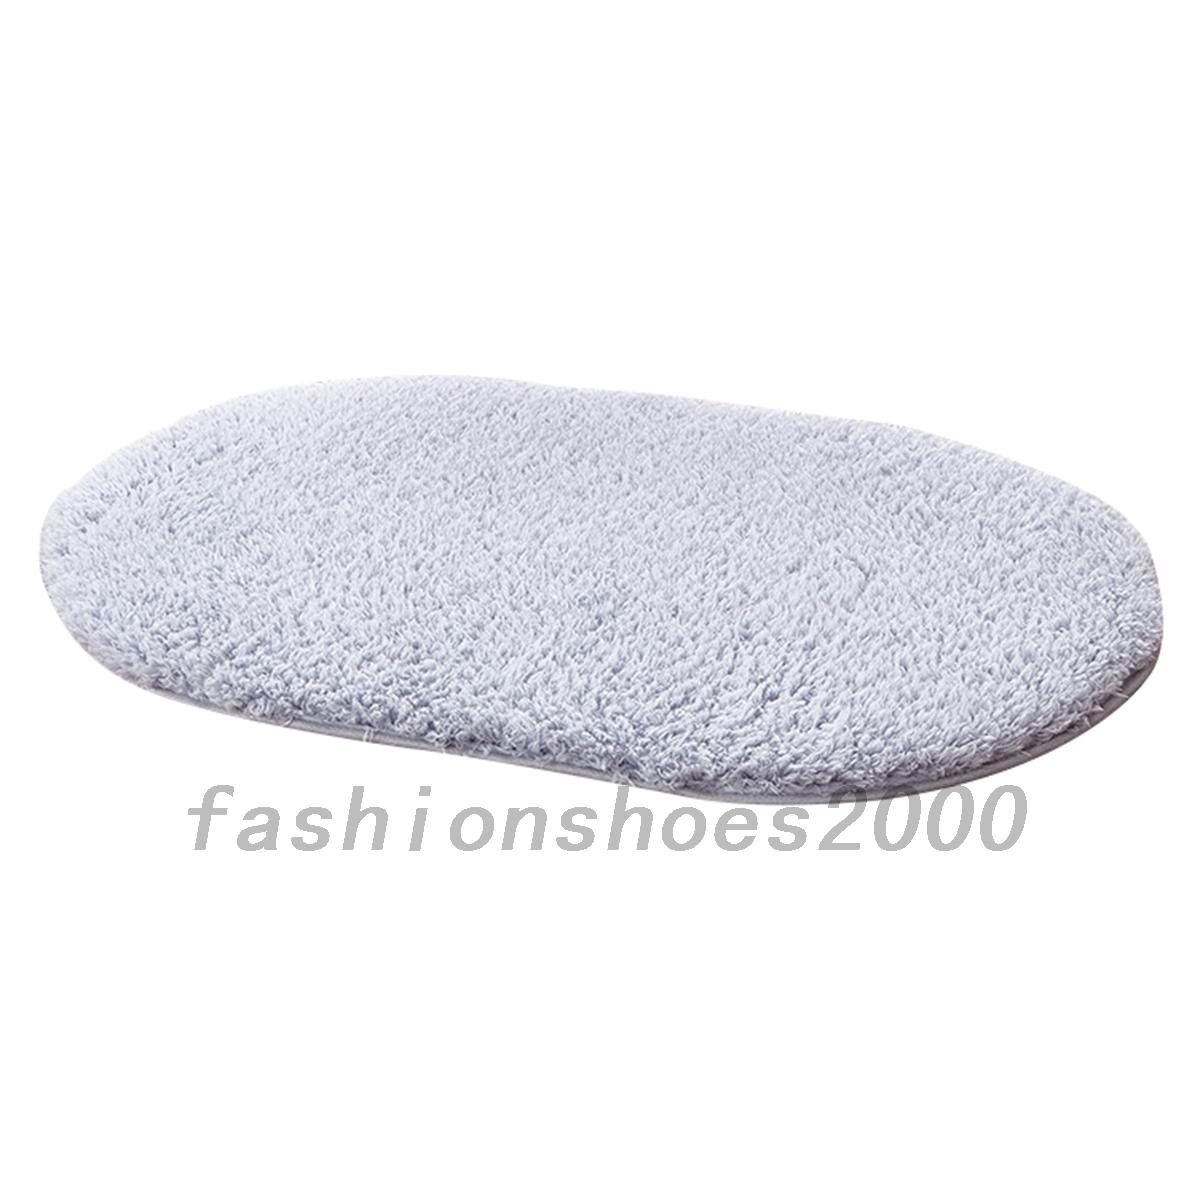 tapis salle de bain rond antid rapante tapis sol tapis pour animaux microfibre ebay. Black Bedroom Furniture Sets. Home Design Ideas